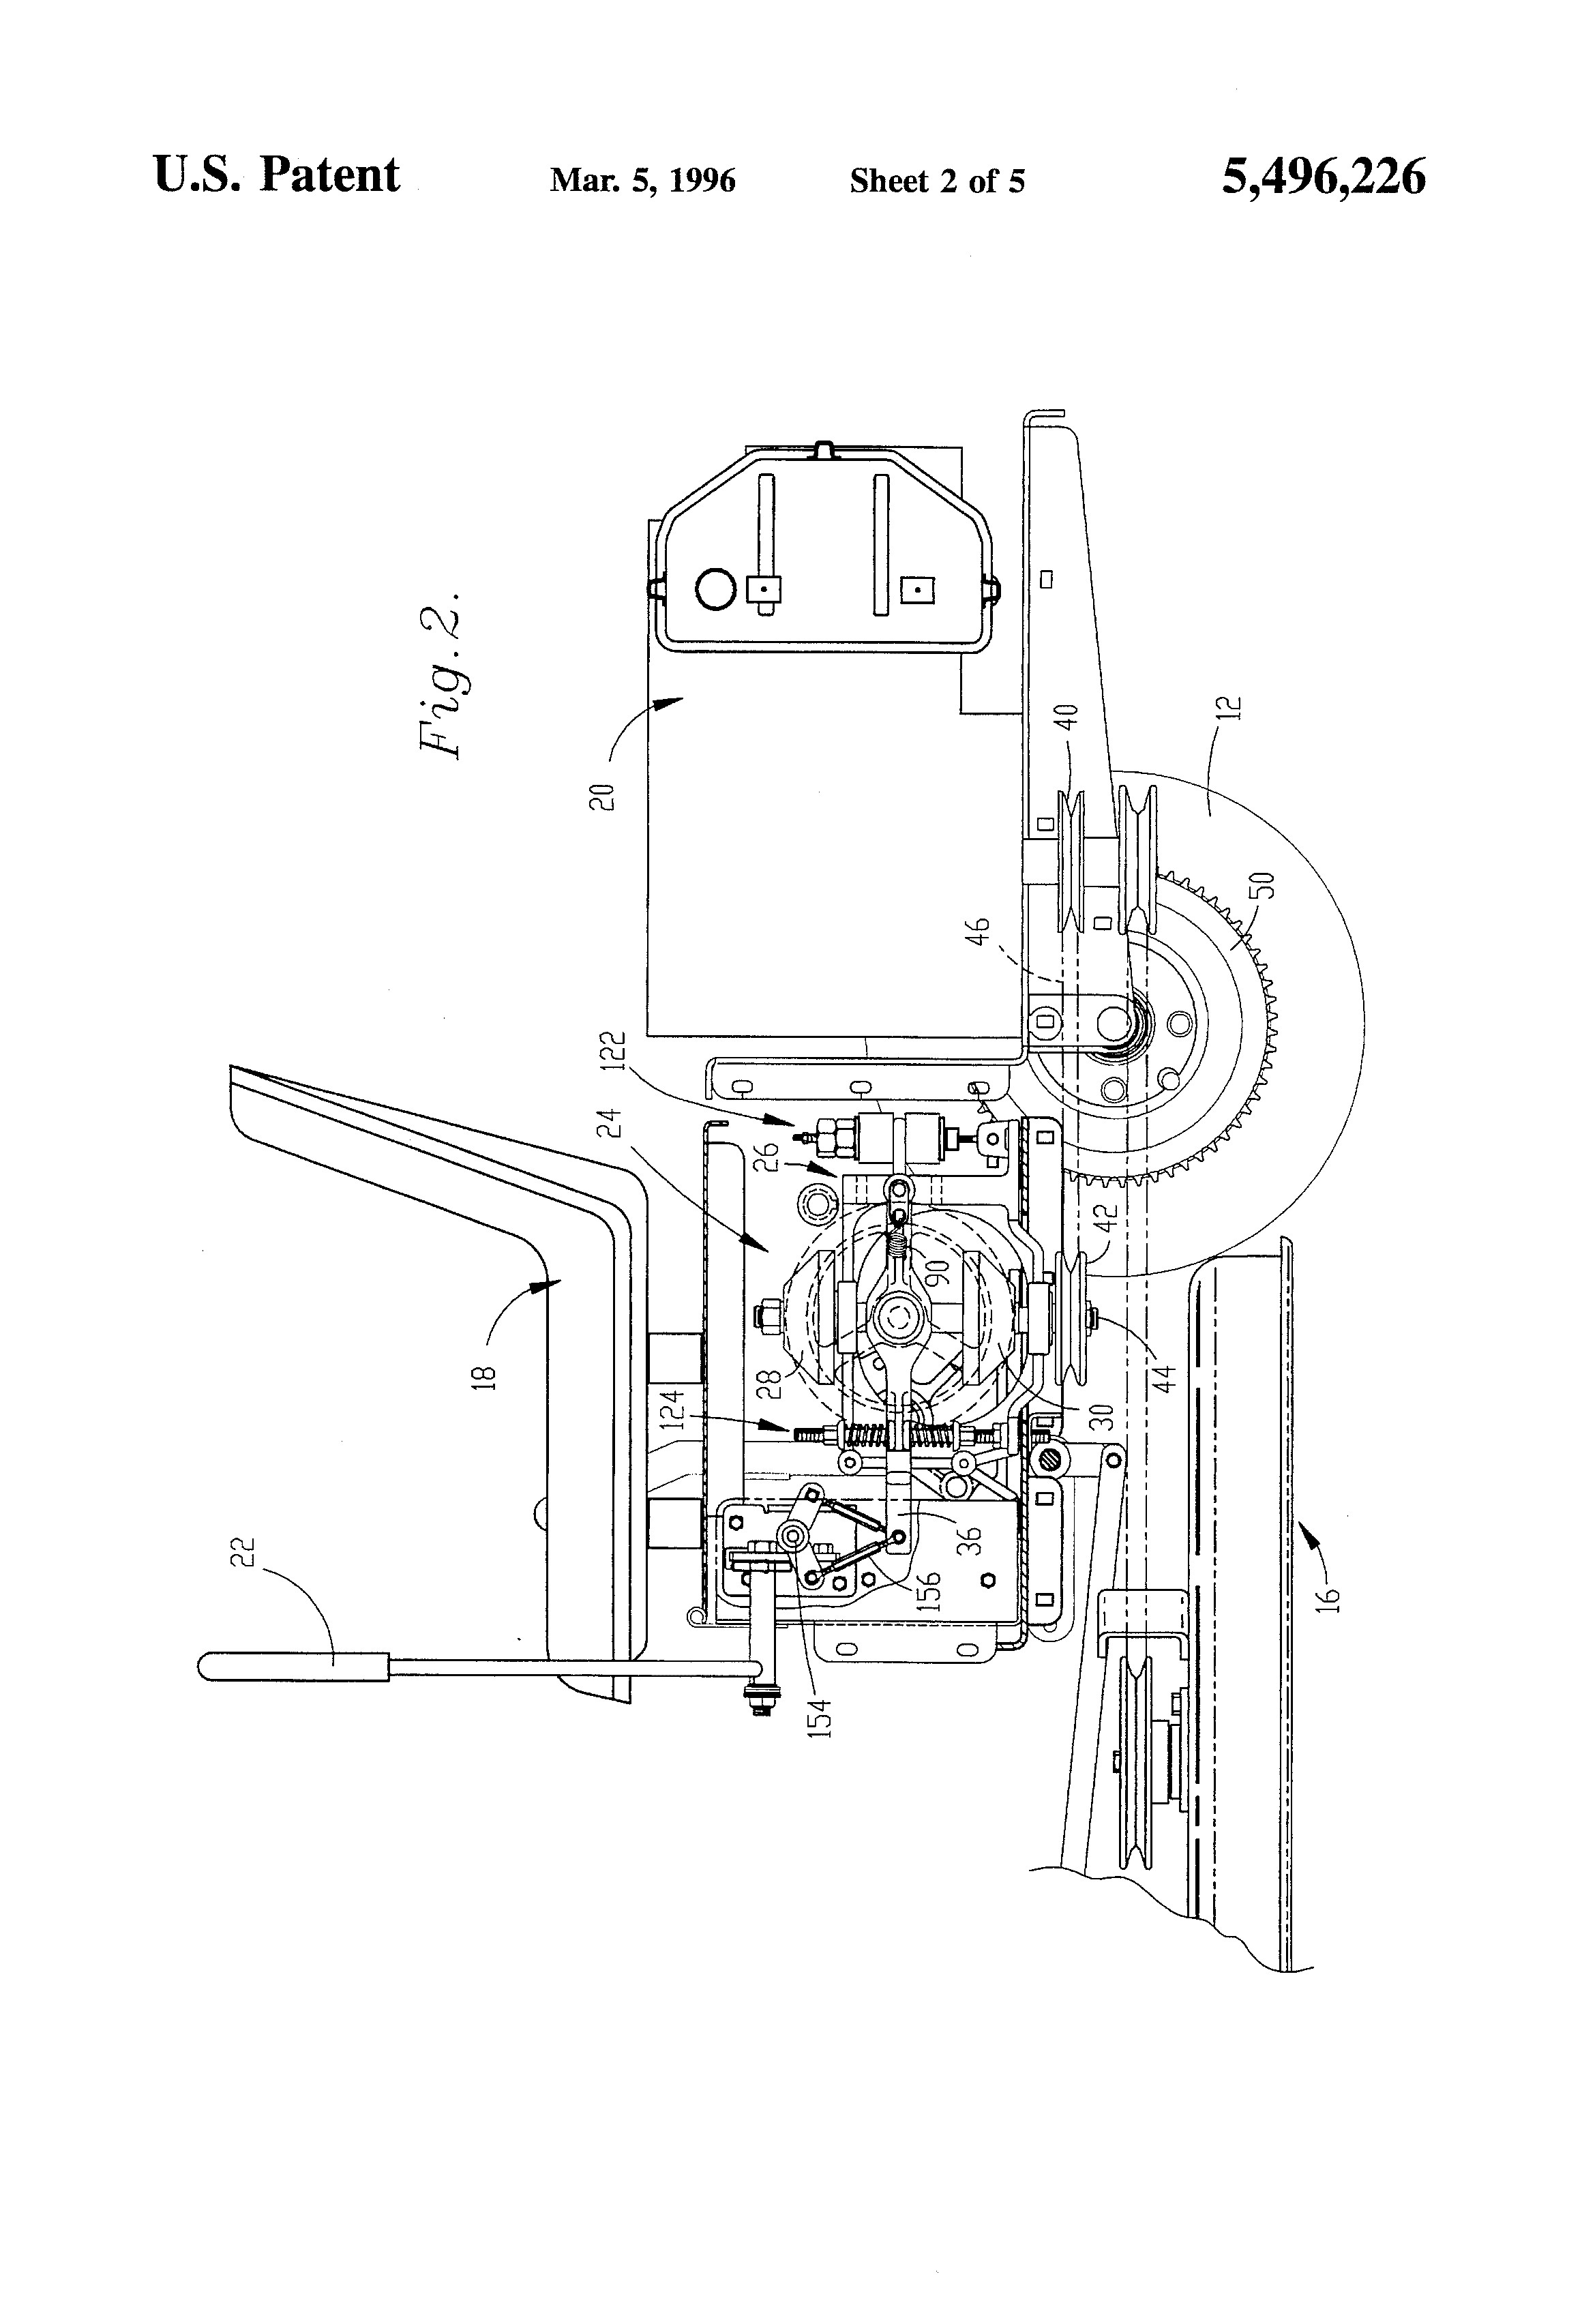 dixon lawn mower parts diagram chrysler 3 5 engine patent us friction drive unit for riding mowers and of